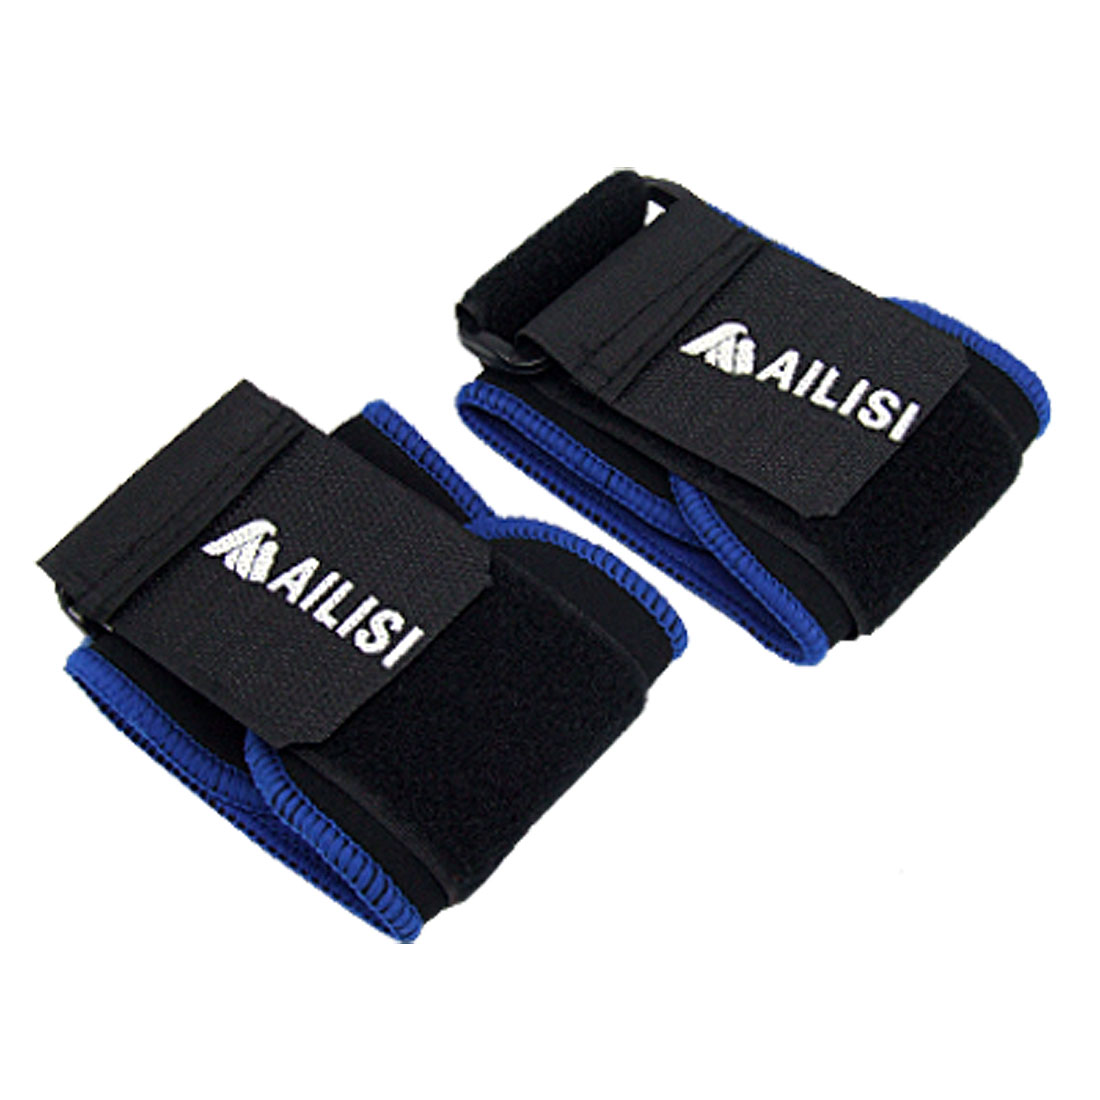 Pair of Black Sports Elastic Wrist Support Protector